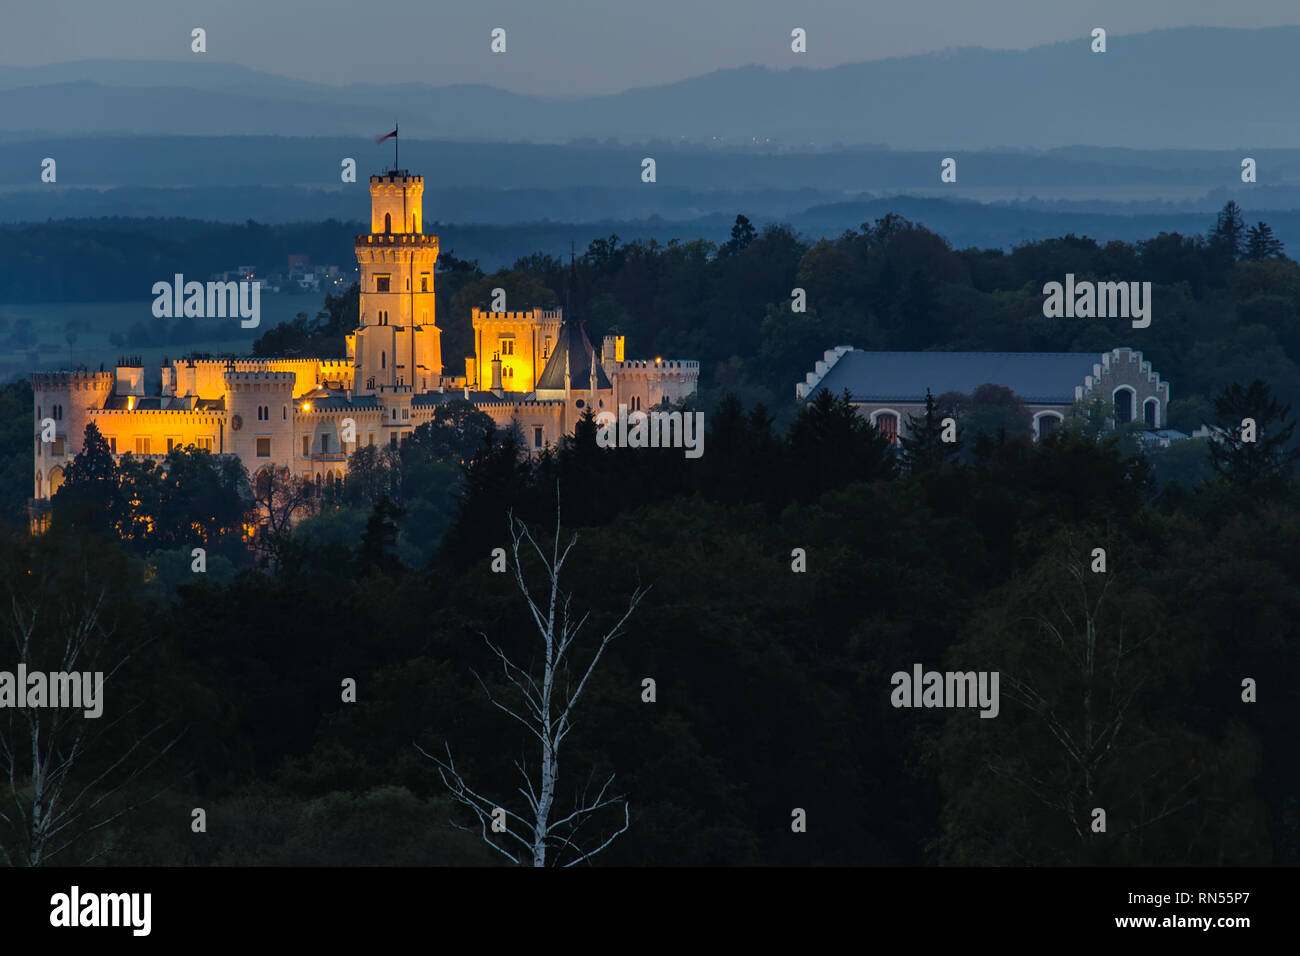 Detail of castle Hluboka nad Vltavou in night with lights - Stock Image